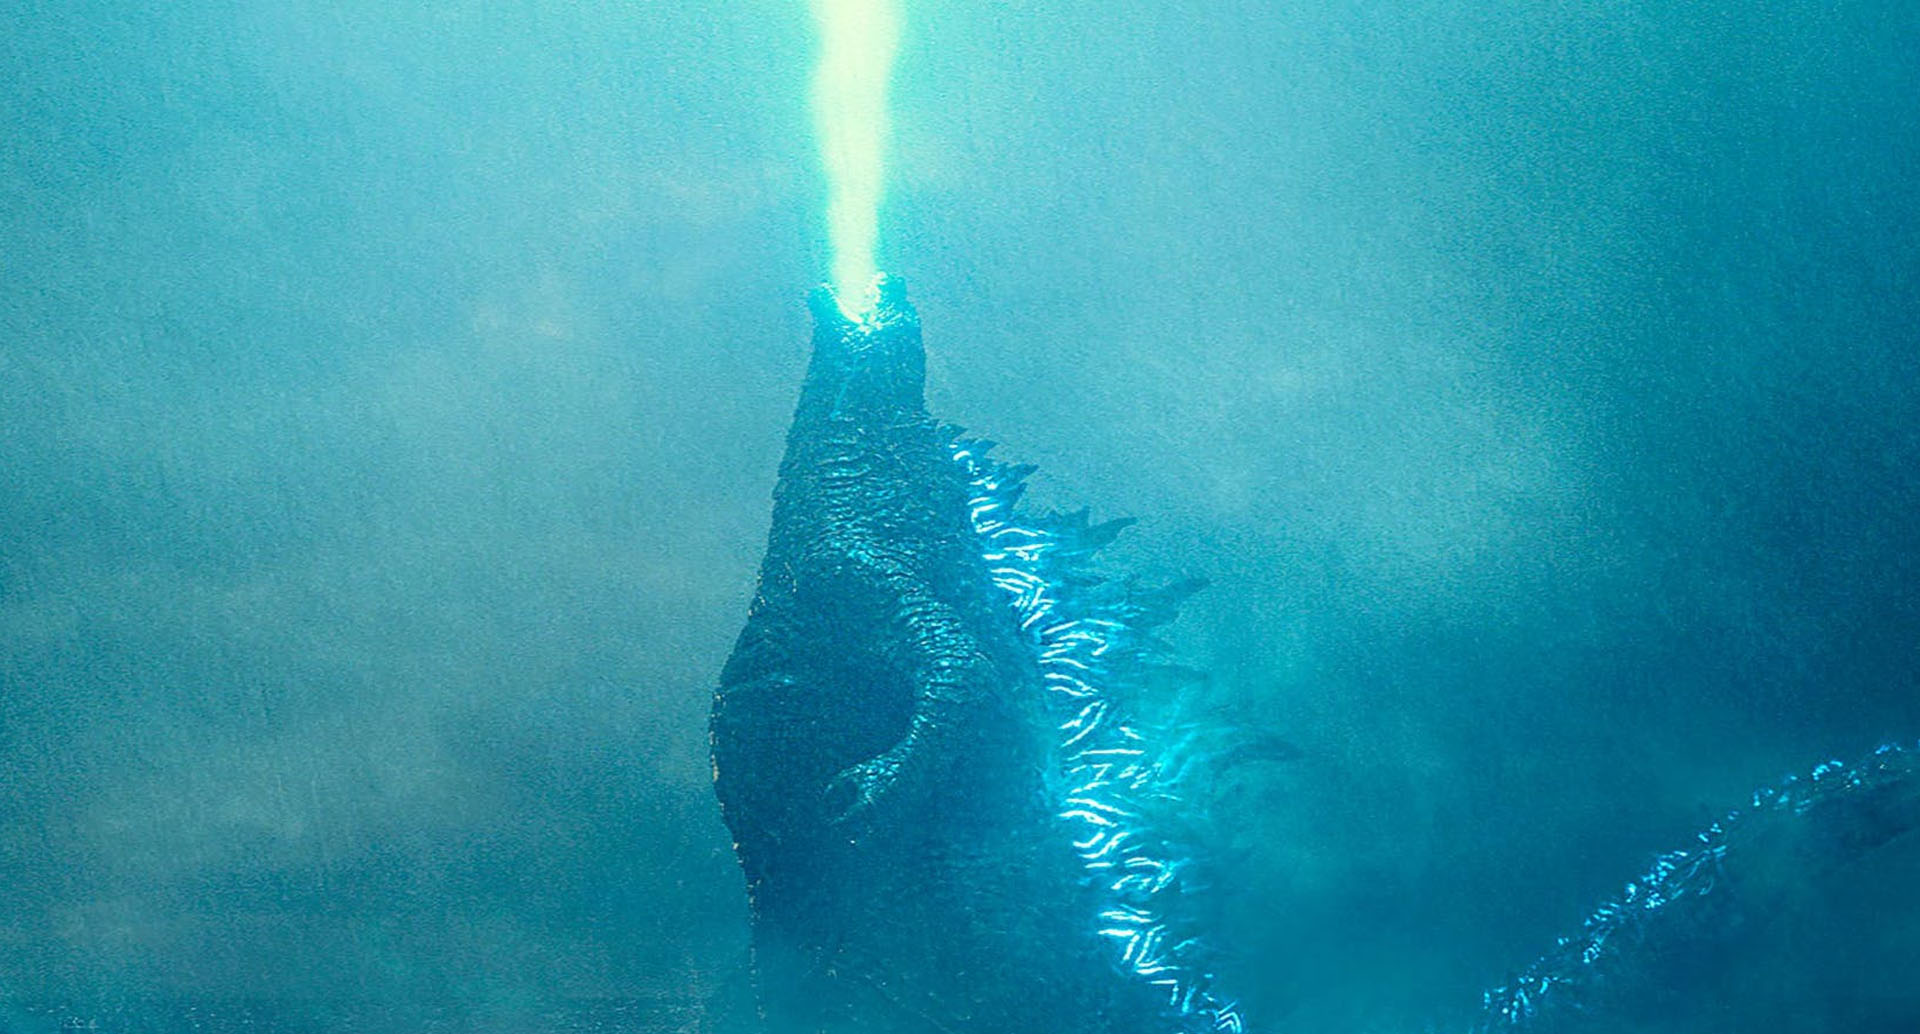 Godzilla: King of the Monsters is Done